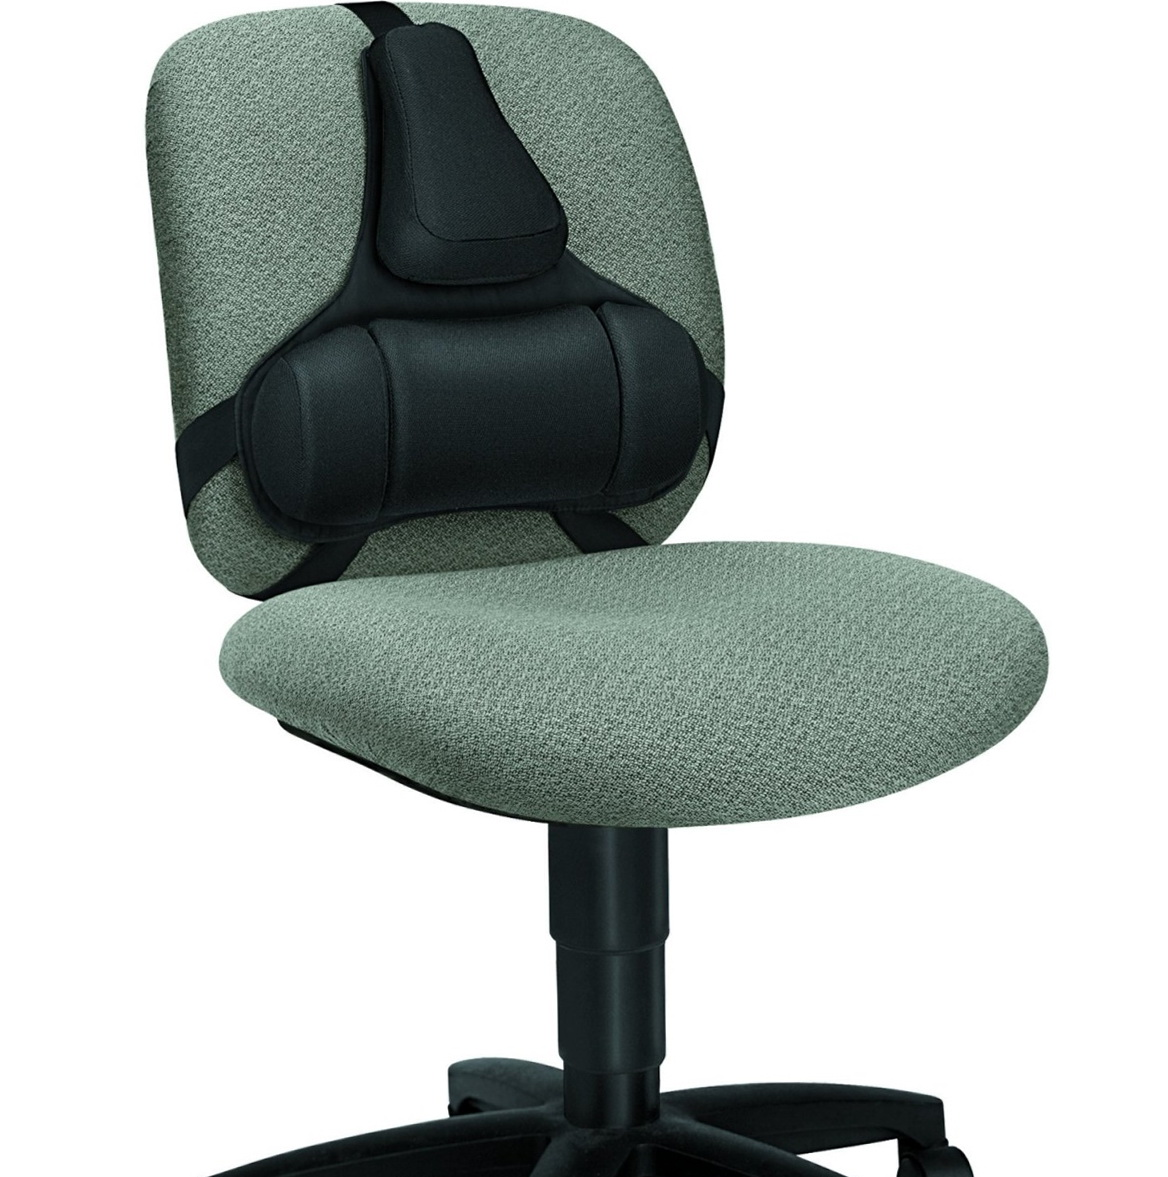 Seat cushion for office chair back pain home design ideas - Office chair cusion ...